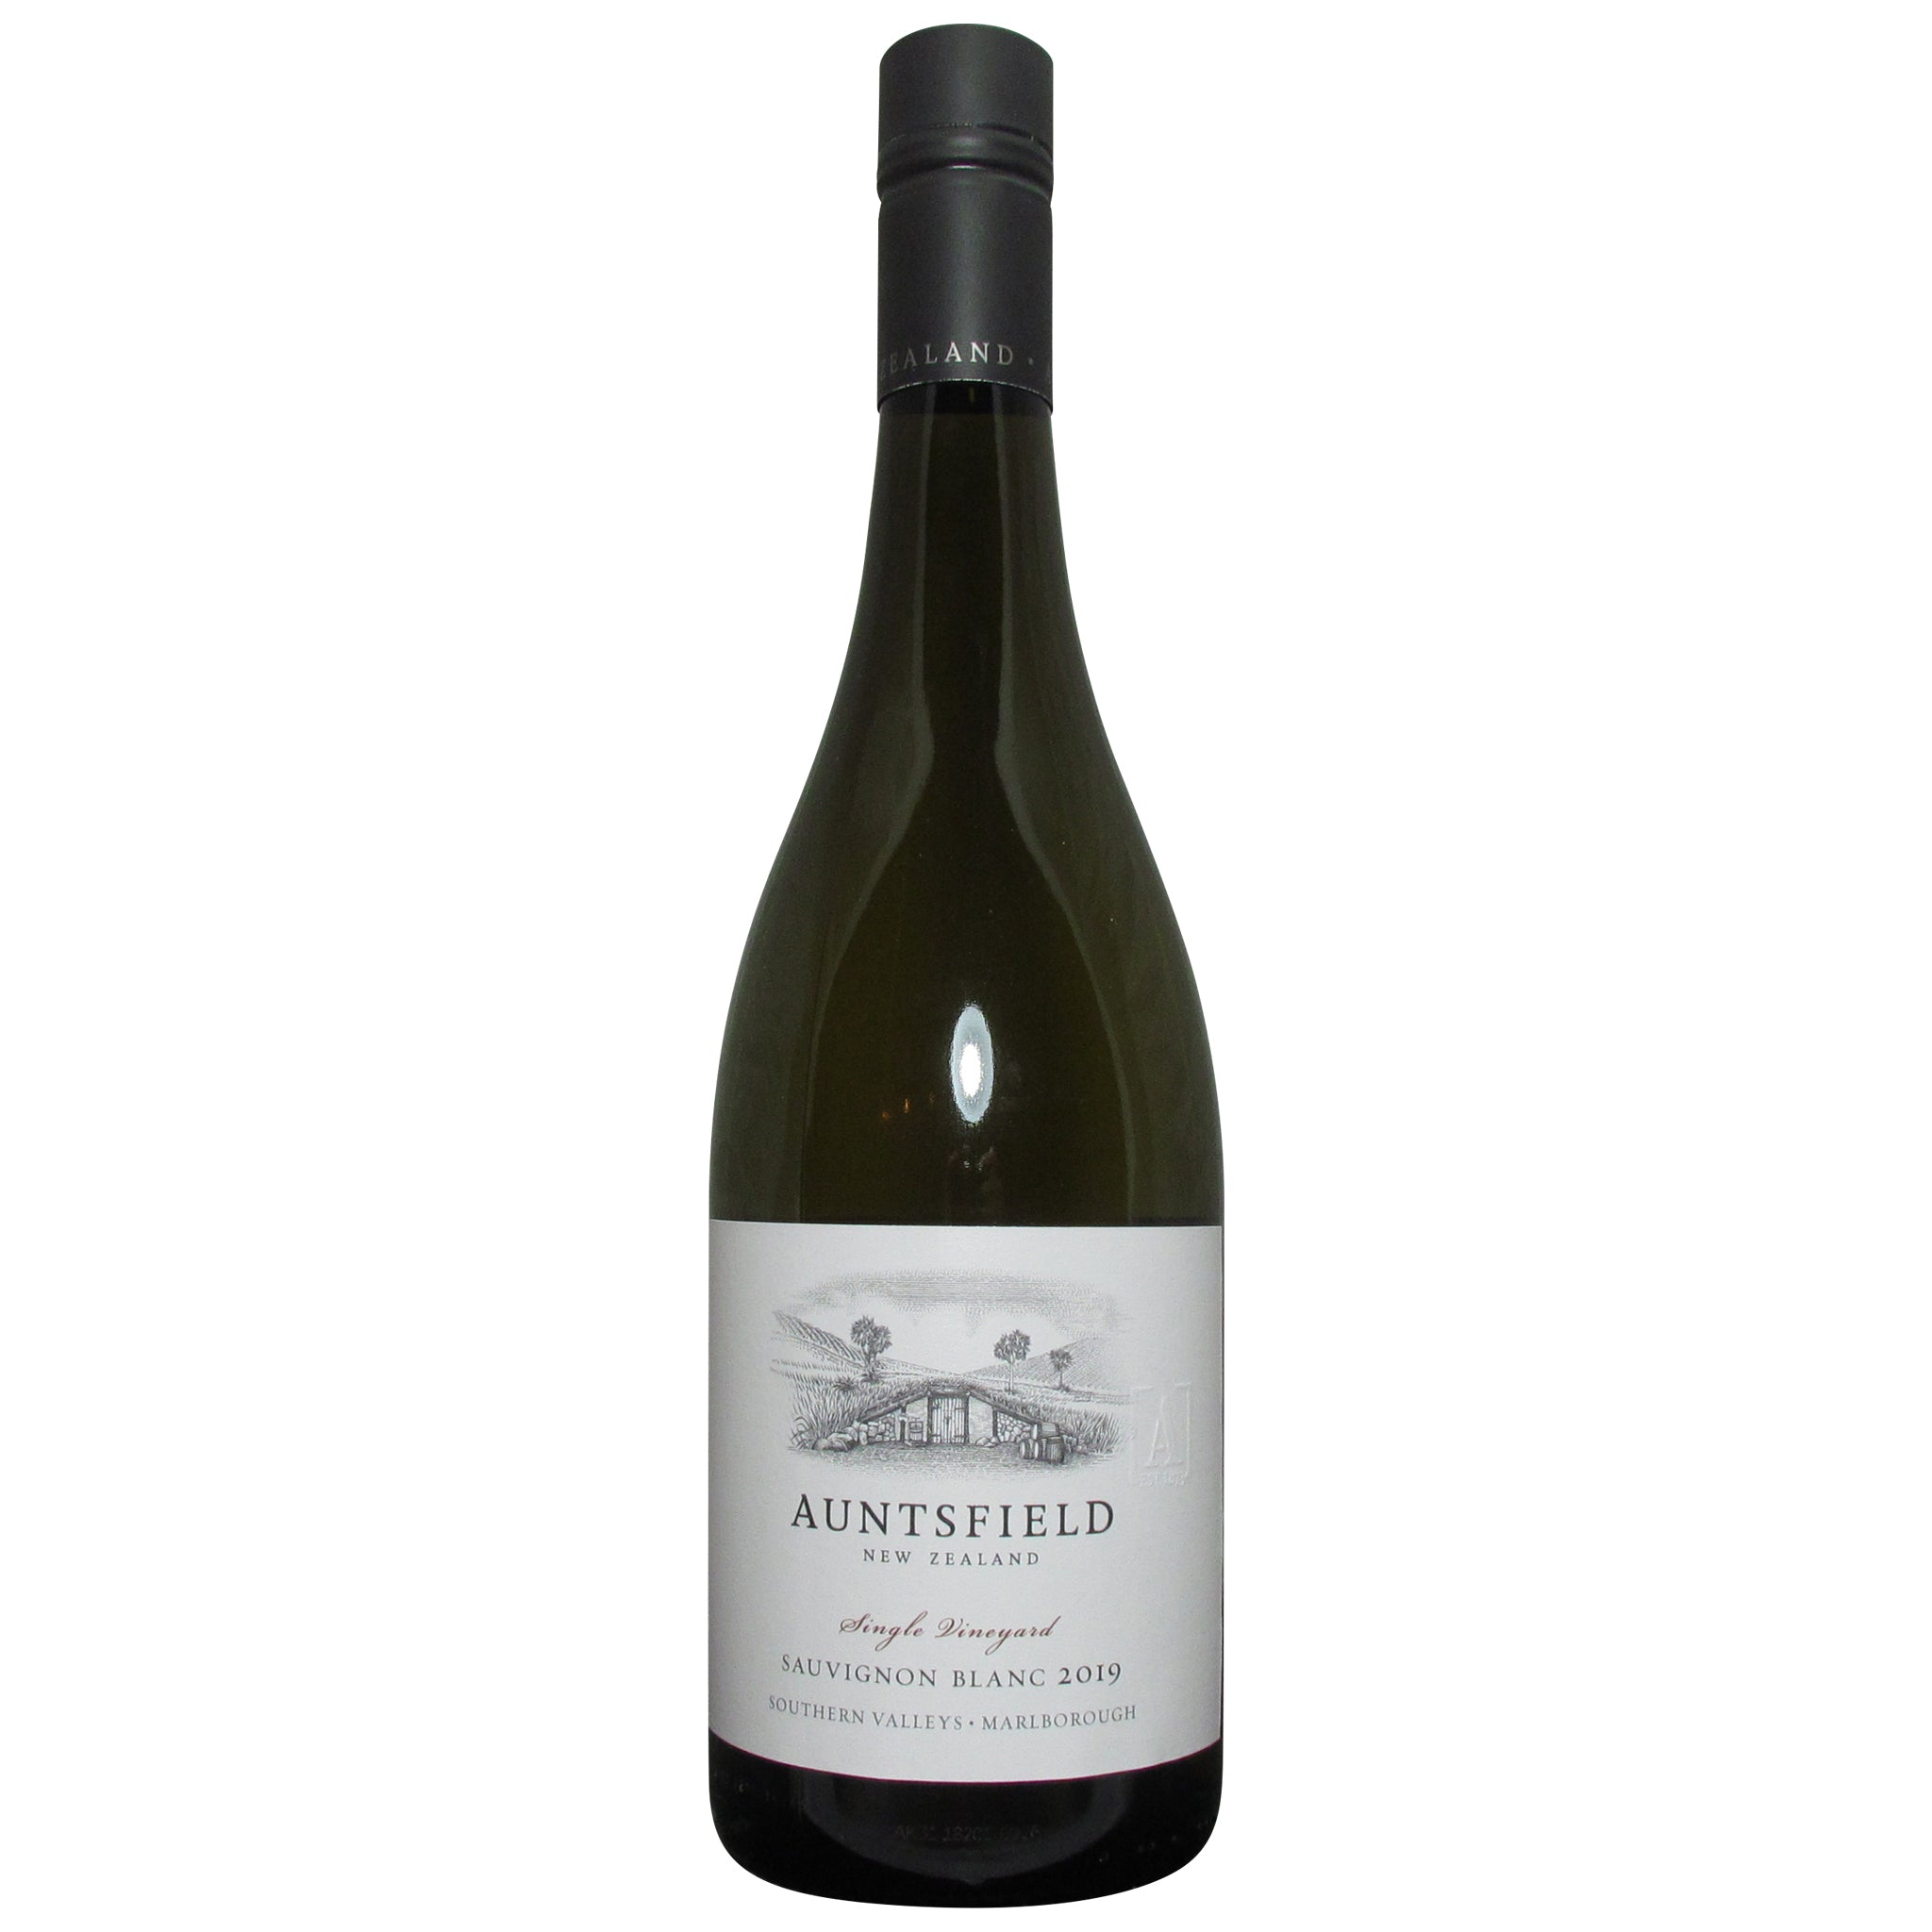 2019 Auntsfield Single Vineyard Sauvignon Blanc